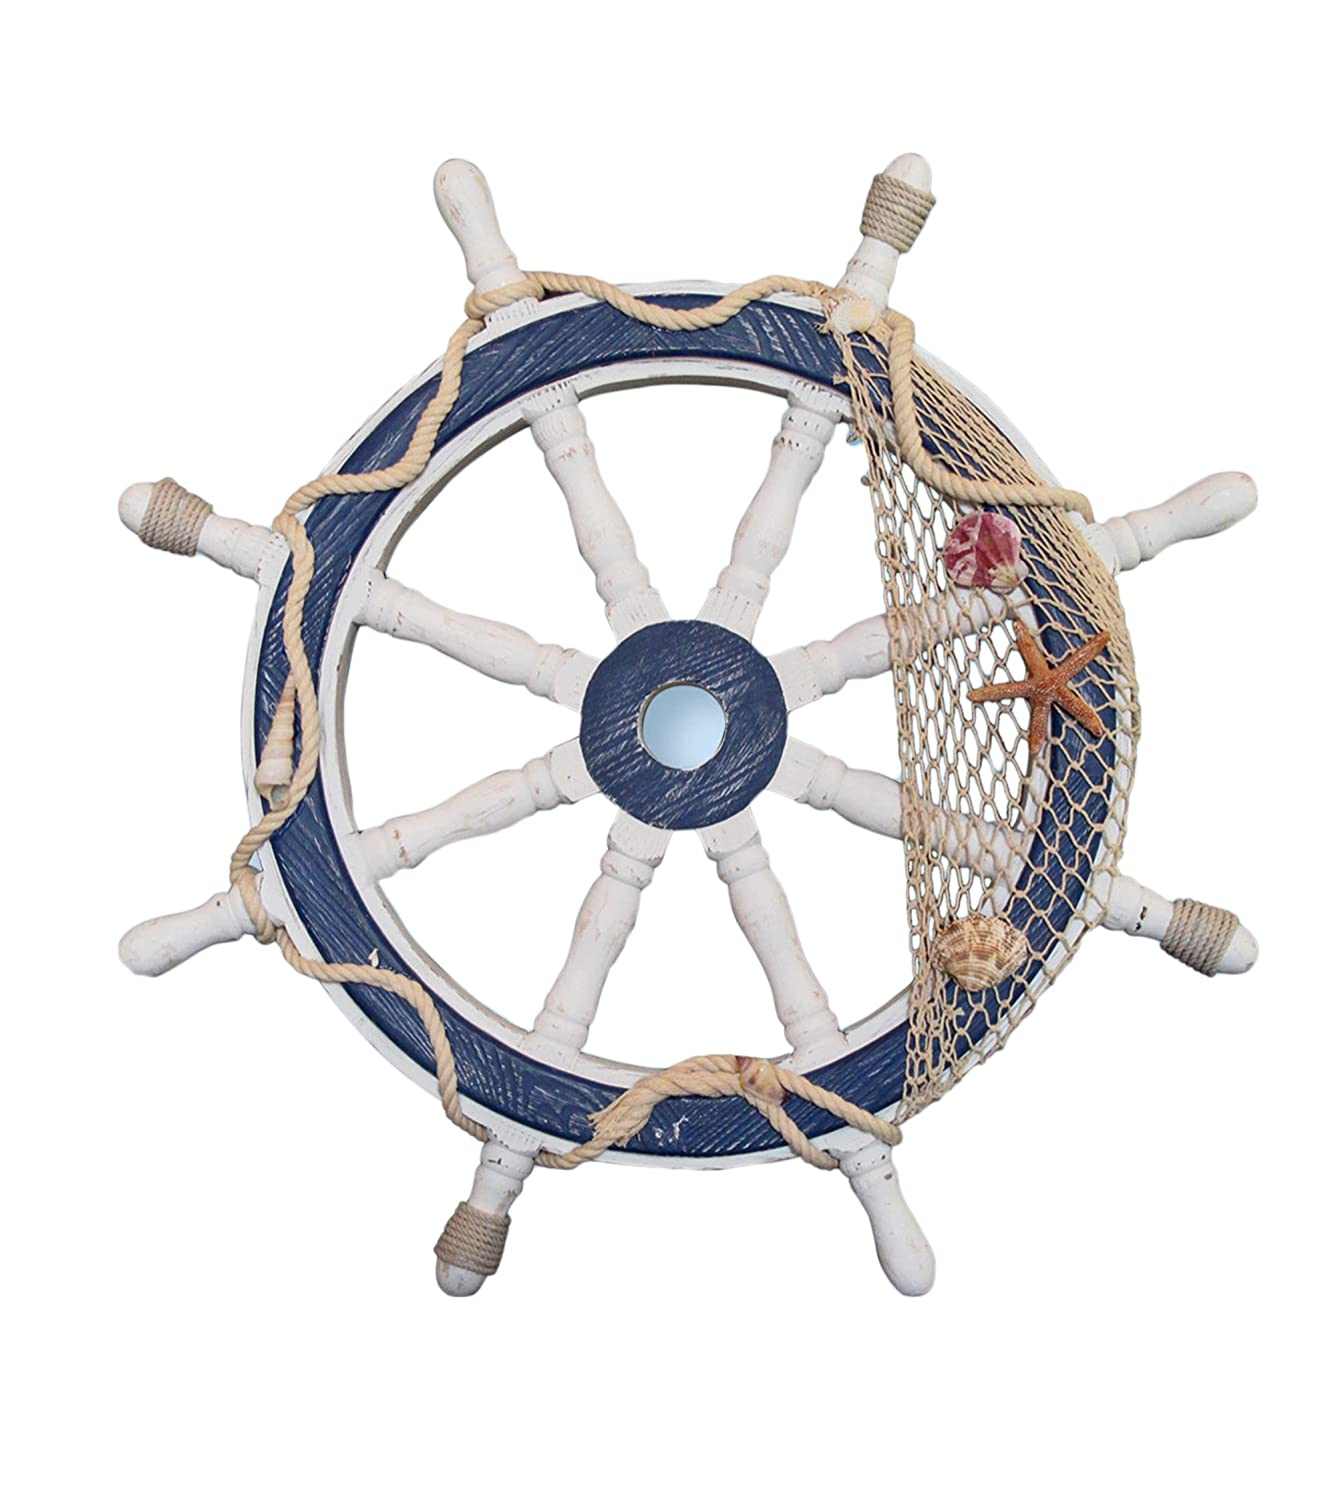 Nautical Wheel Decor: Nautical Decorations